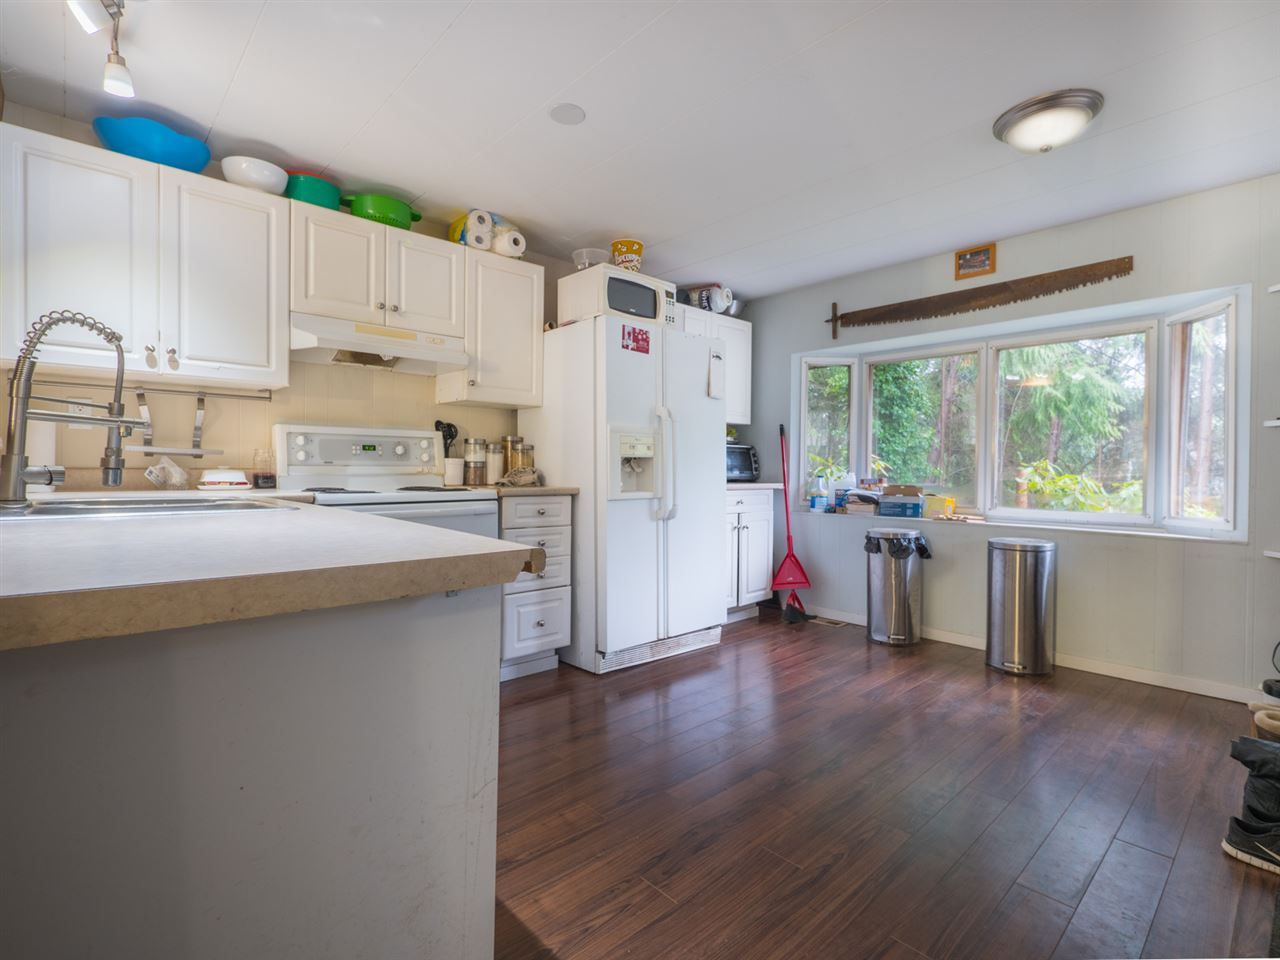 Photo 4: Photos: 5592 WAKEFIELD Road in Sechelt: Sechelt District Manufactured Home for sale (Sunshine Coast)  : MLS®# R2230720